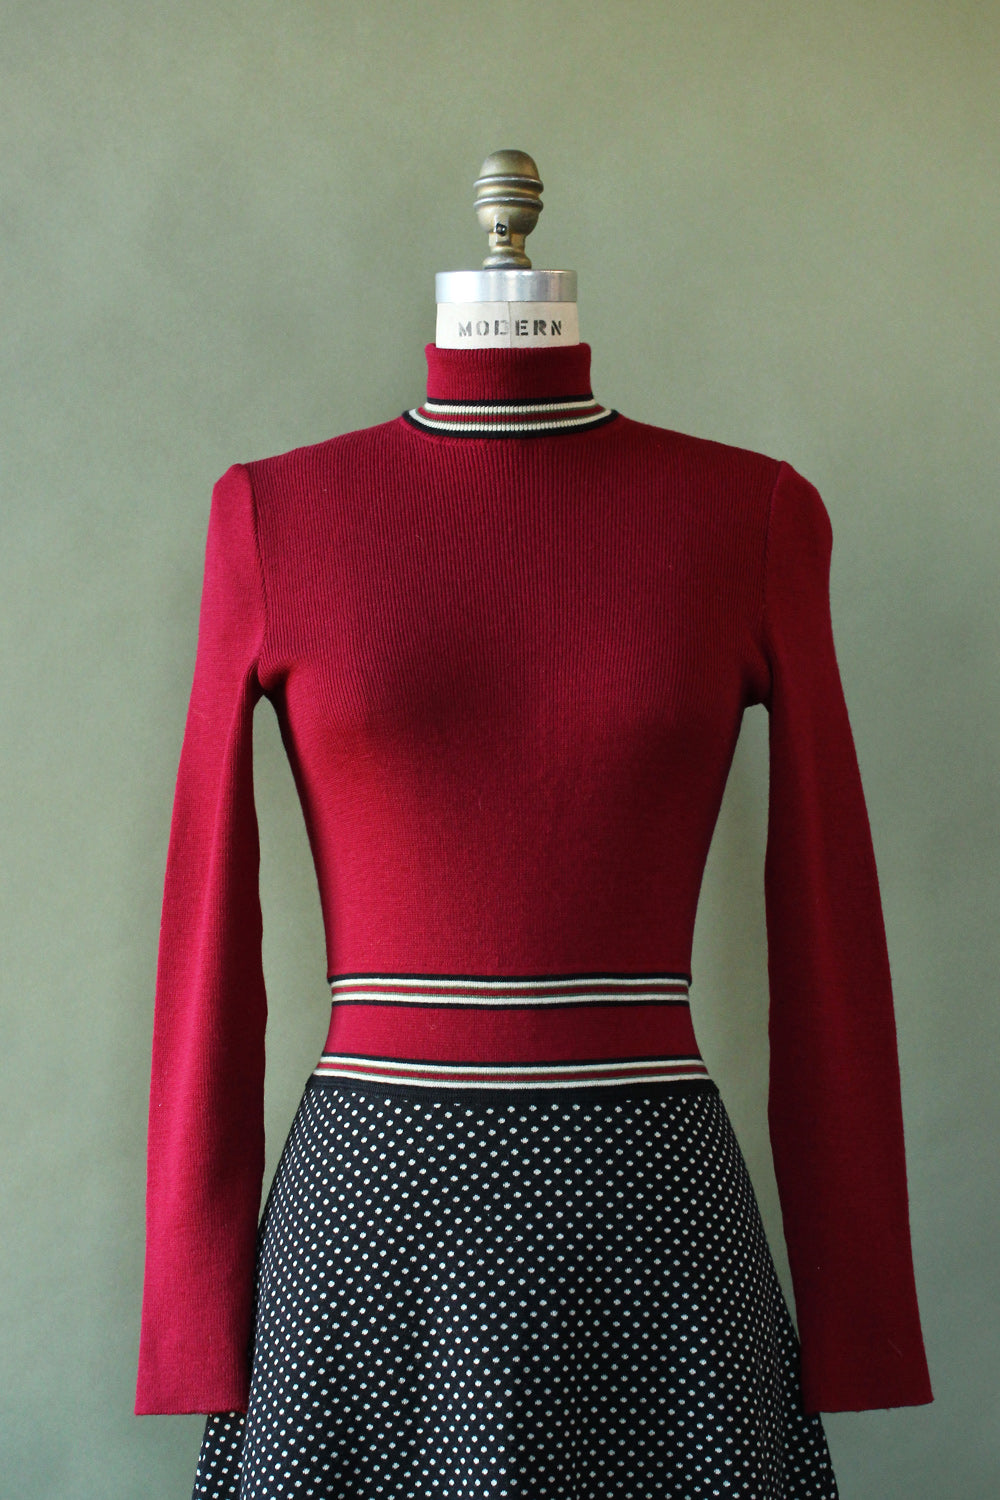 Cranberry Italian Wool Sweater Dress M/L